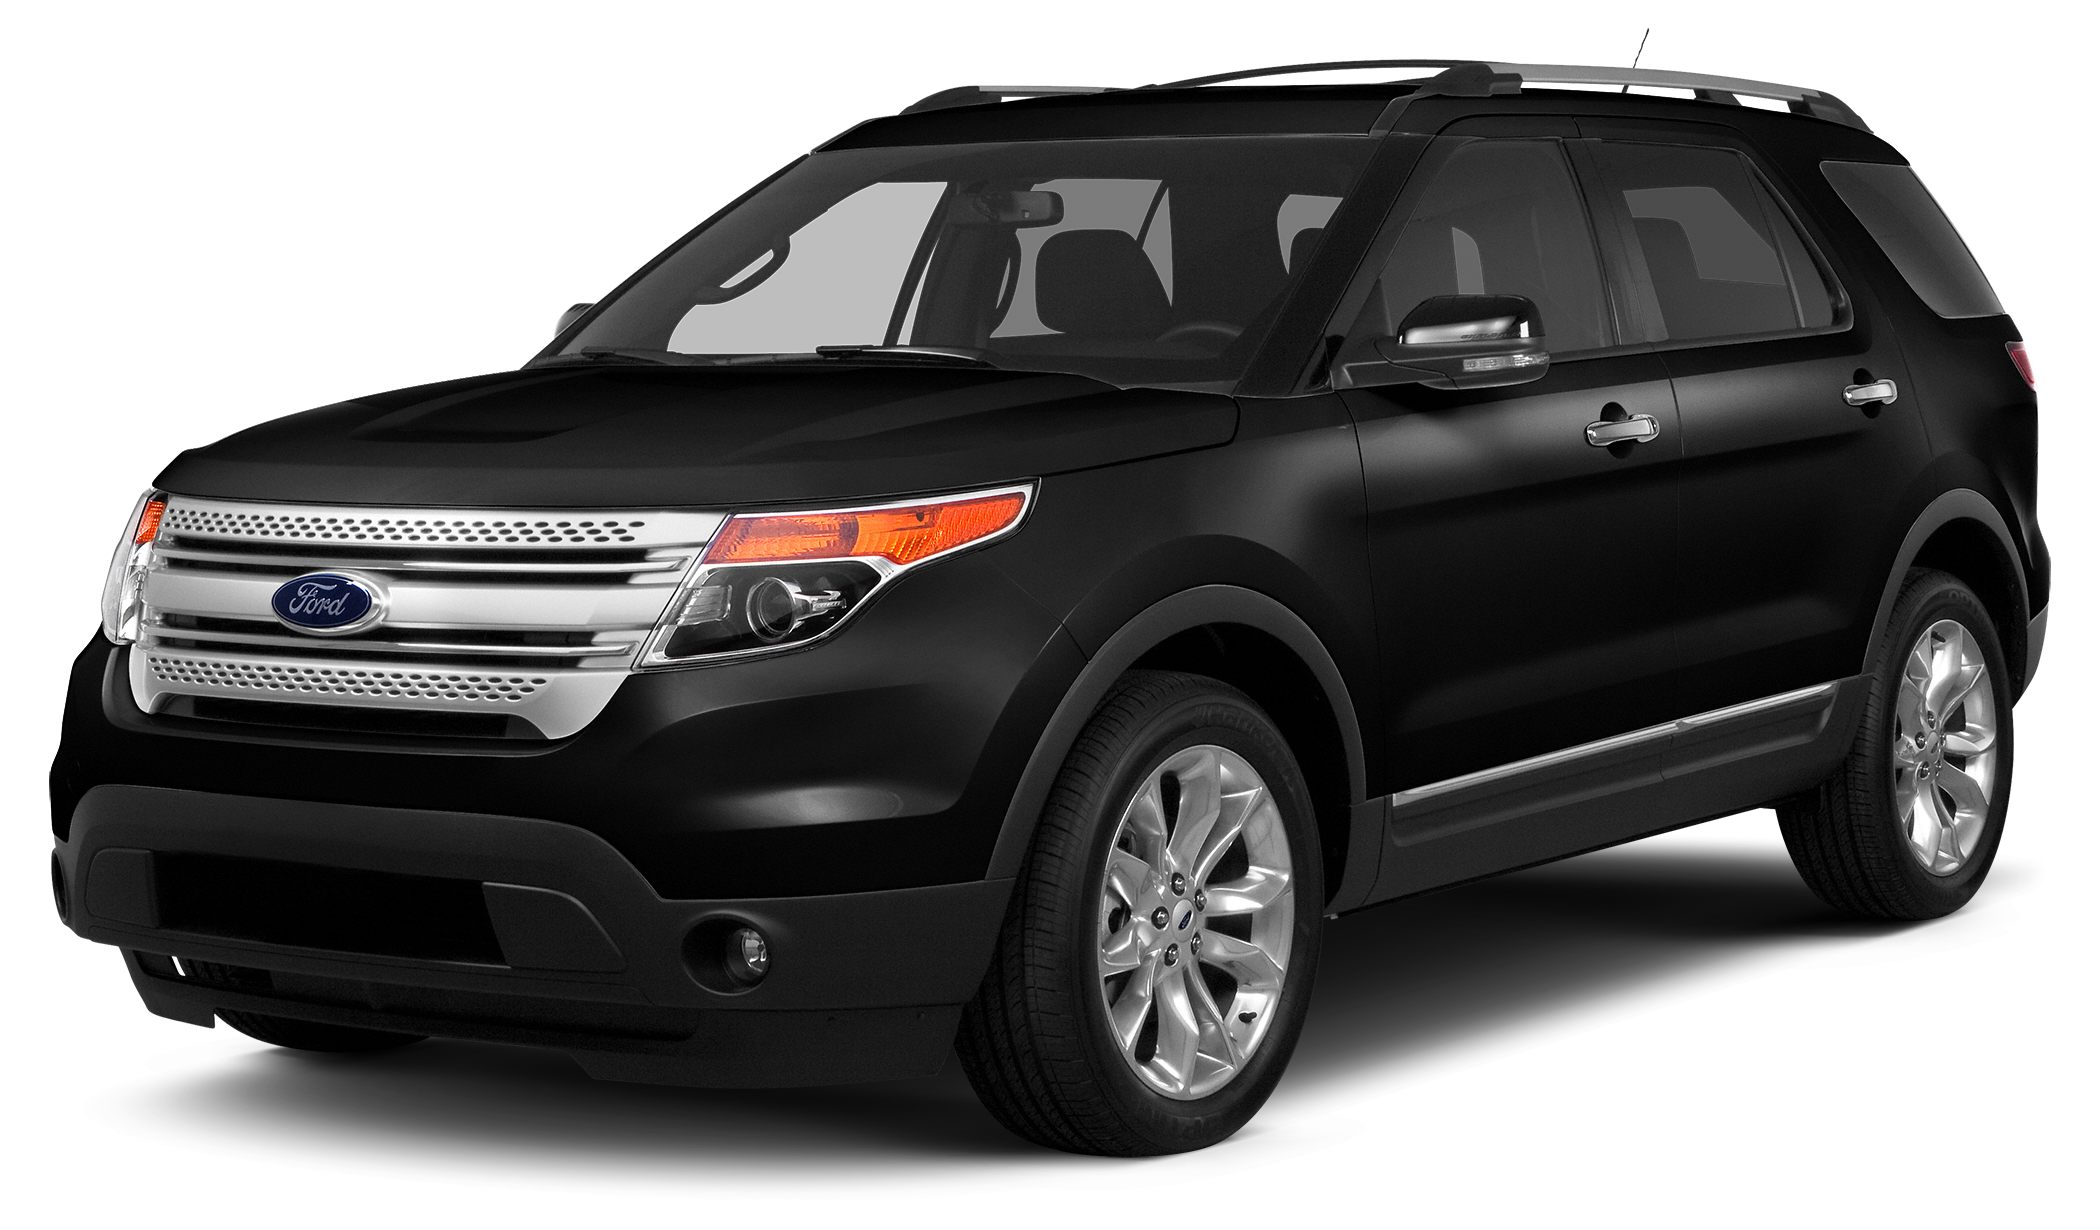 2015 Ford Explorer XLT DISCLAIMER We are excited to offer this vehicle to you but it is currently